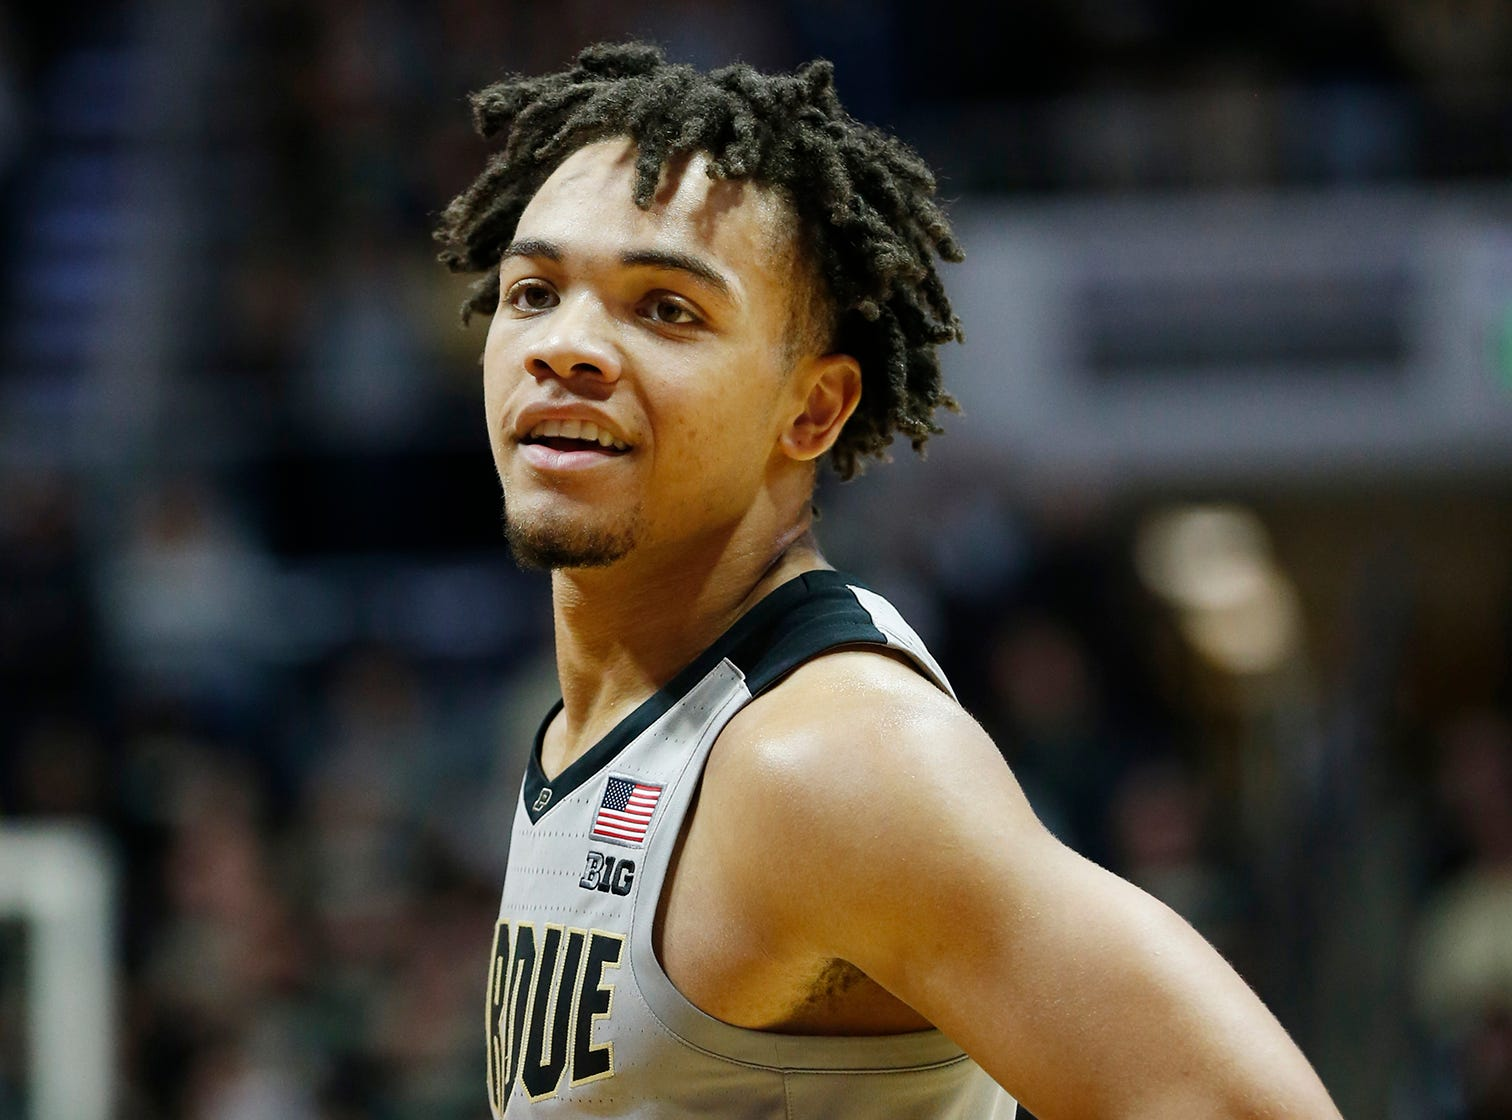 Carsen Edwards of Purdue grins as the Boilermakers prepare to shoot a free throw against Ball State Saturday, November 10, 2018, at Mackey Arena. Purdue defeated Ball State 84-75.